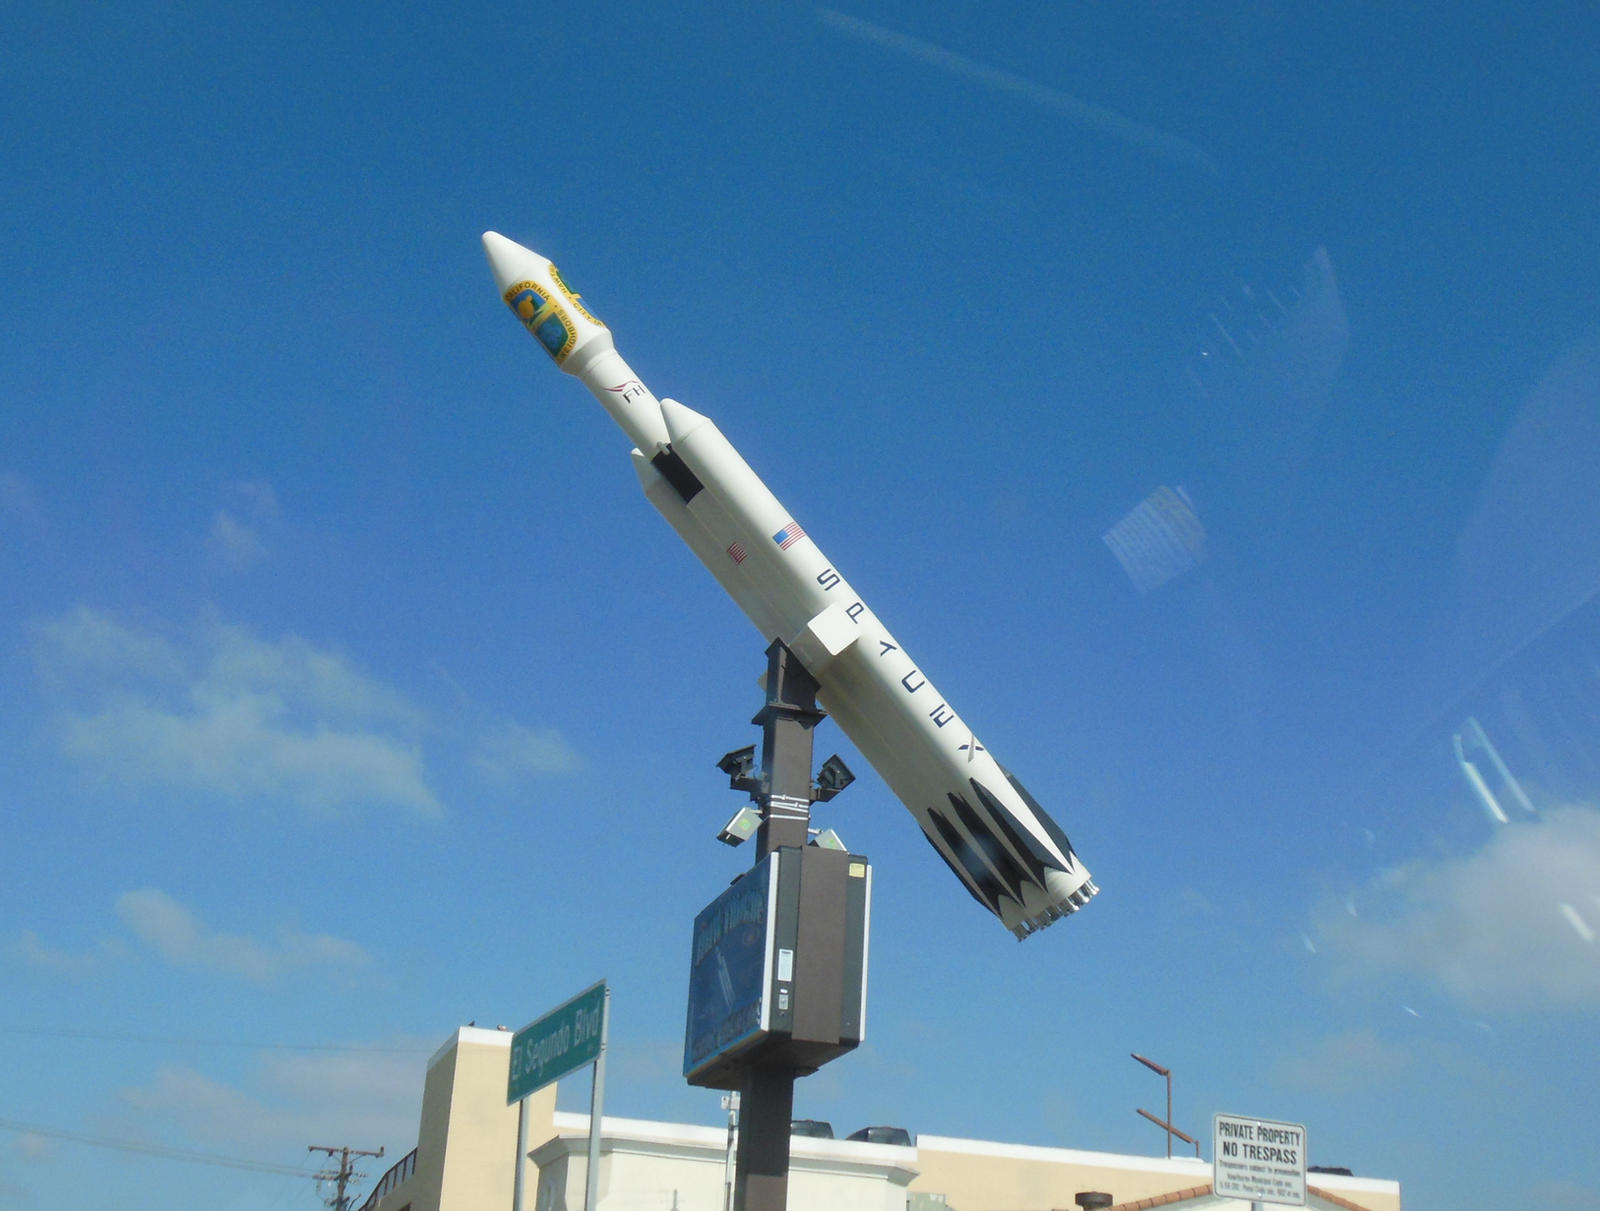 SpaceX Rocket at El Segundo and Hawthorne Blvds by ...